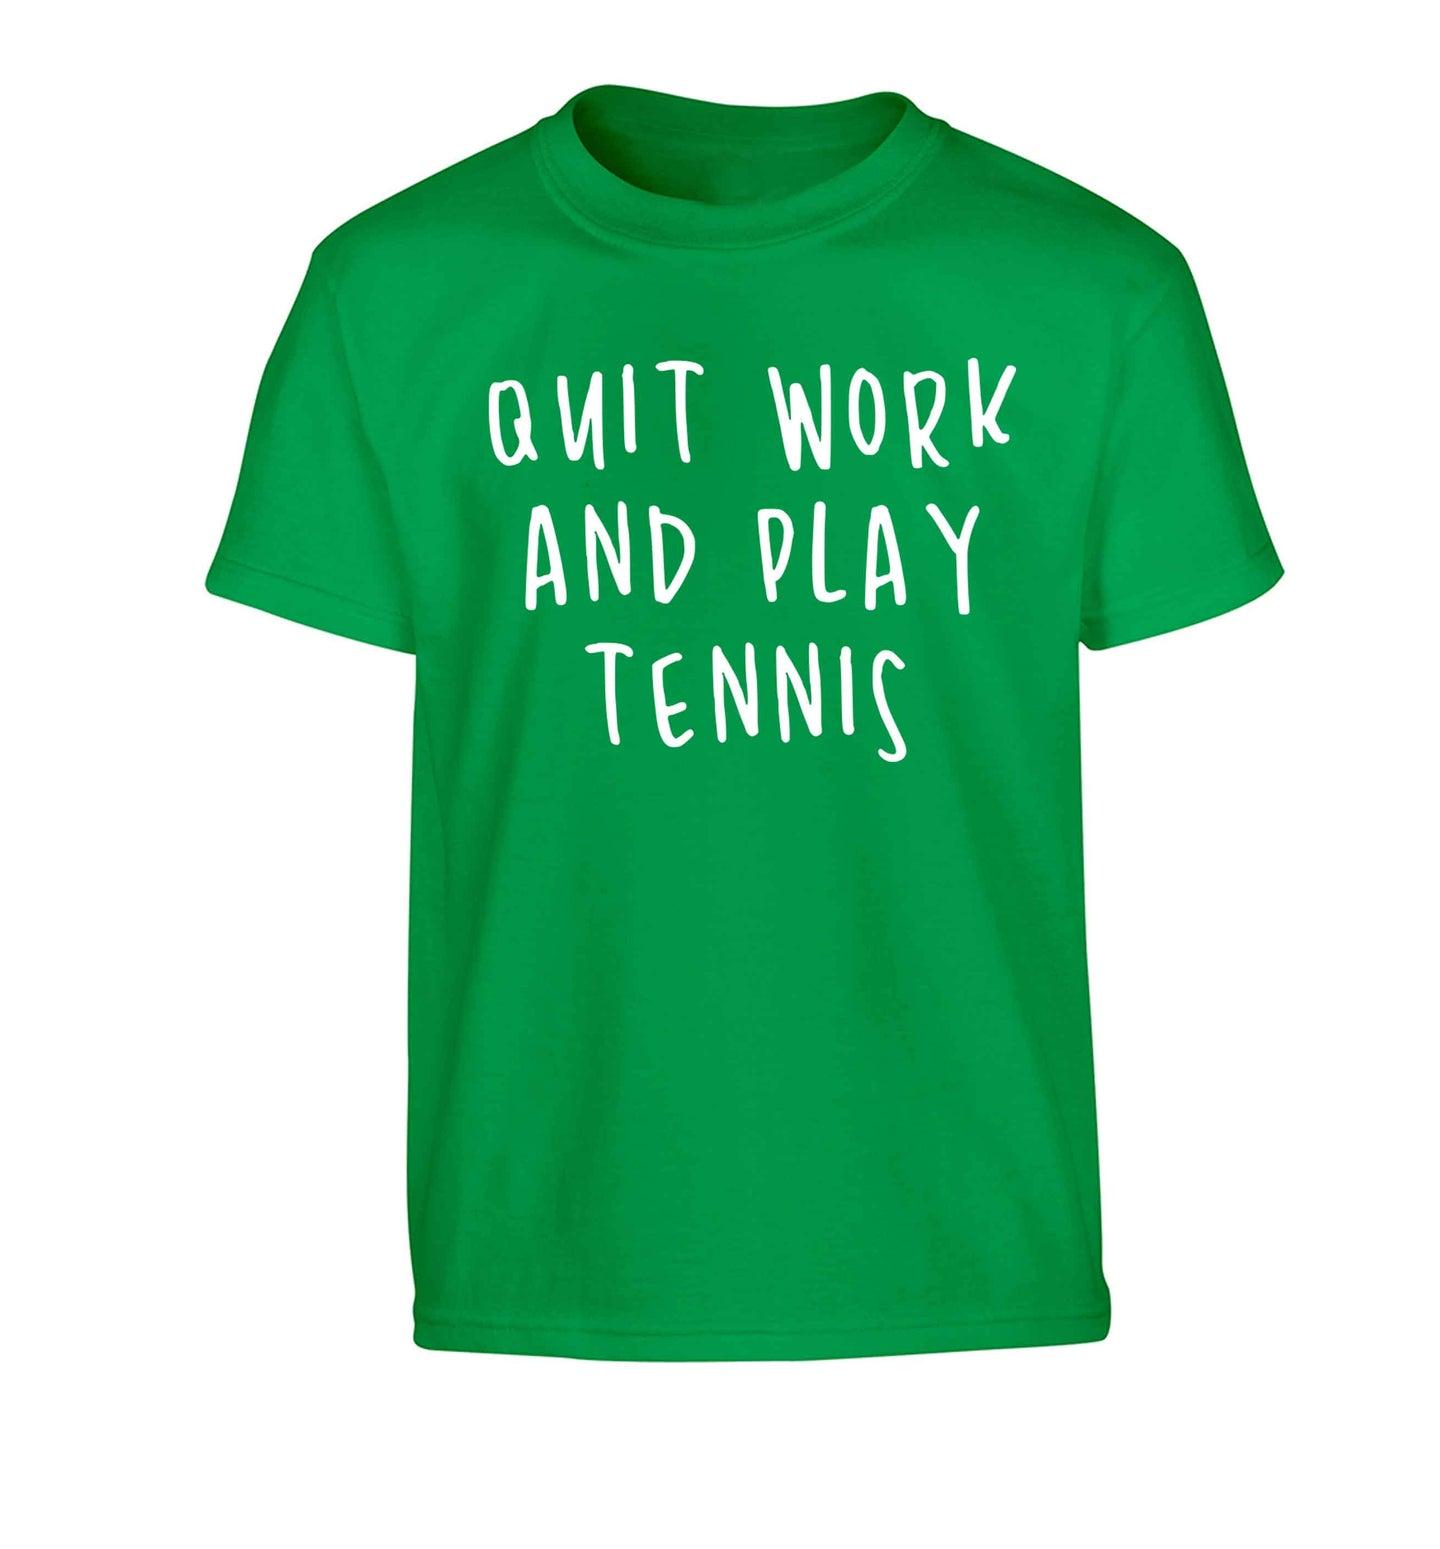 Quit work and play tennis Children's green Tshirt 12-13 Years